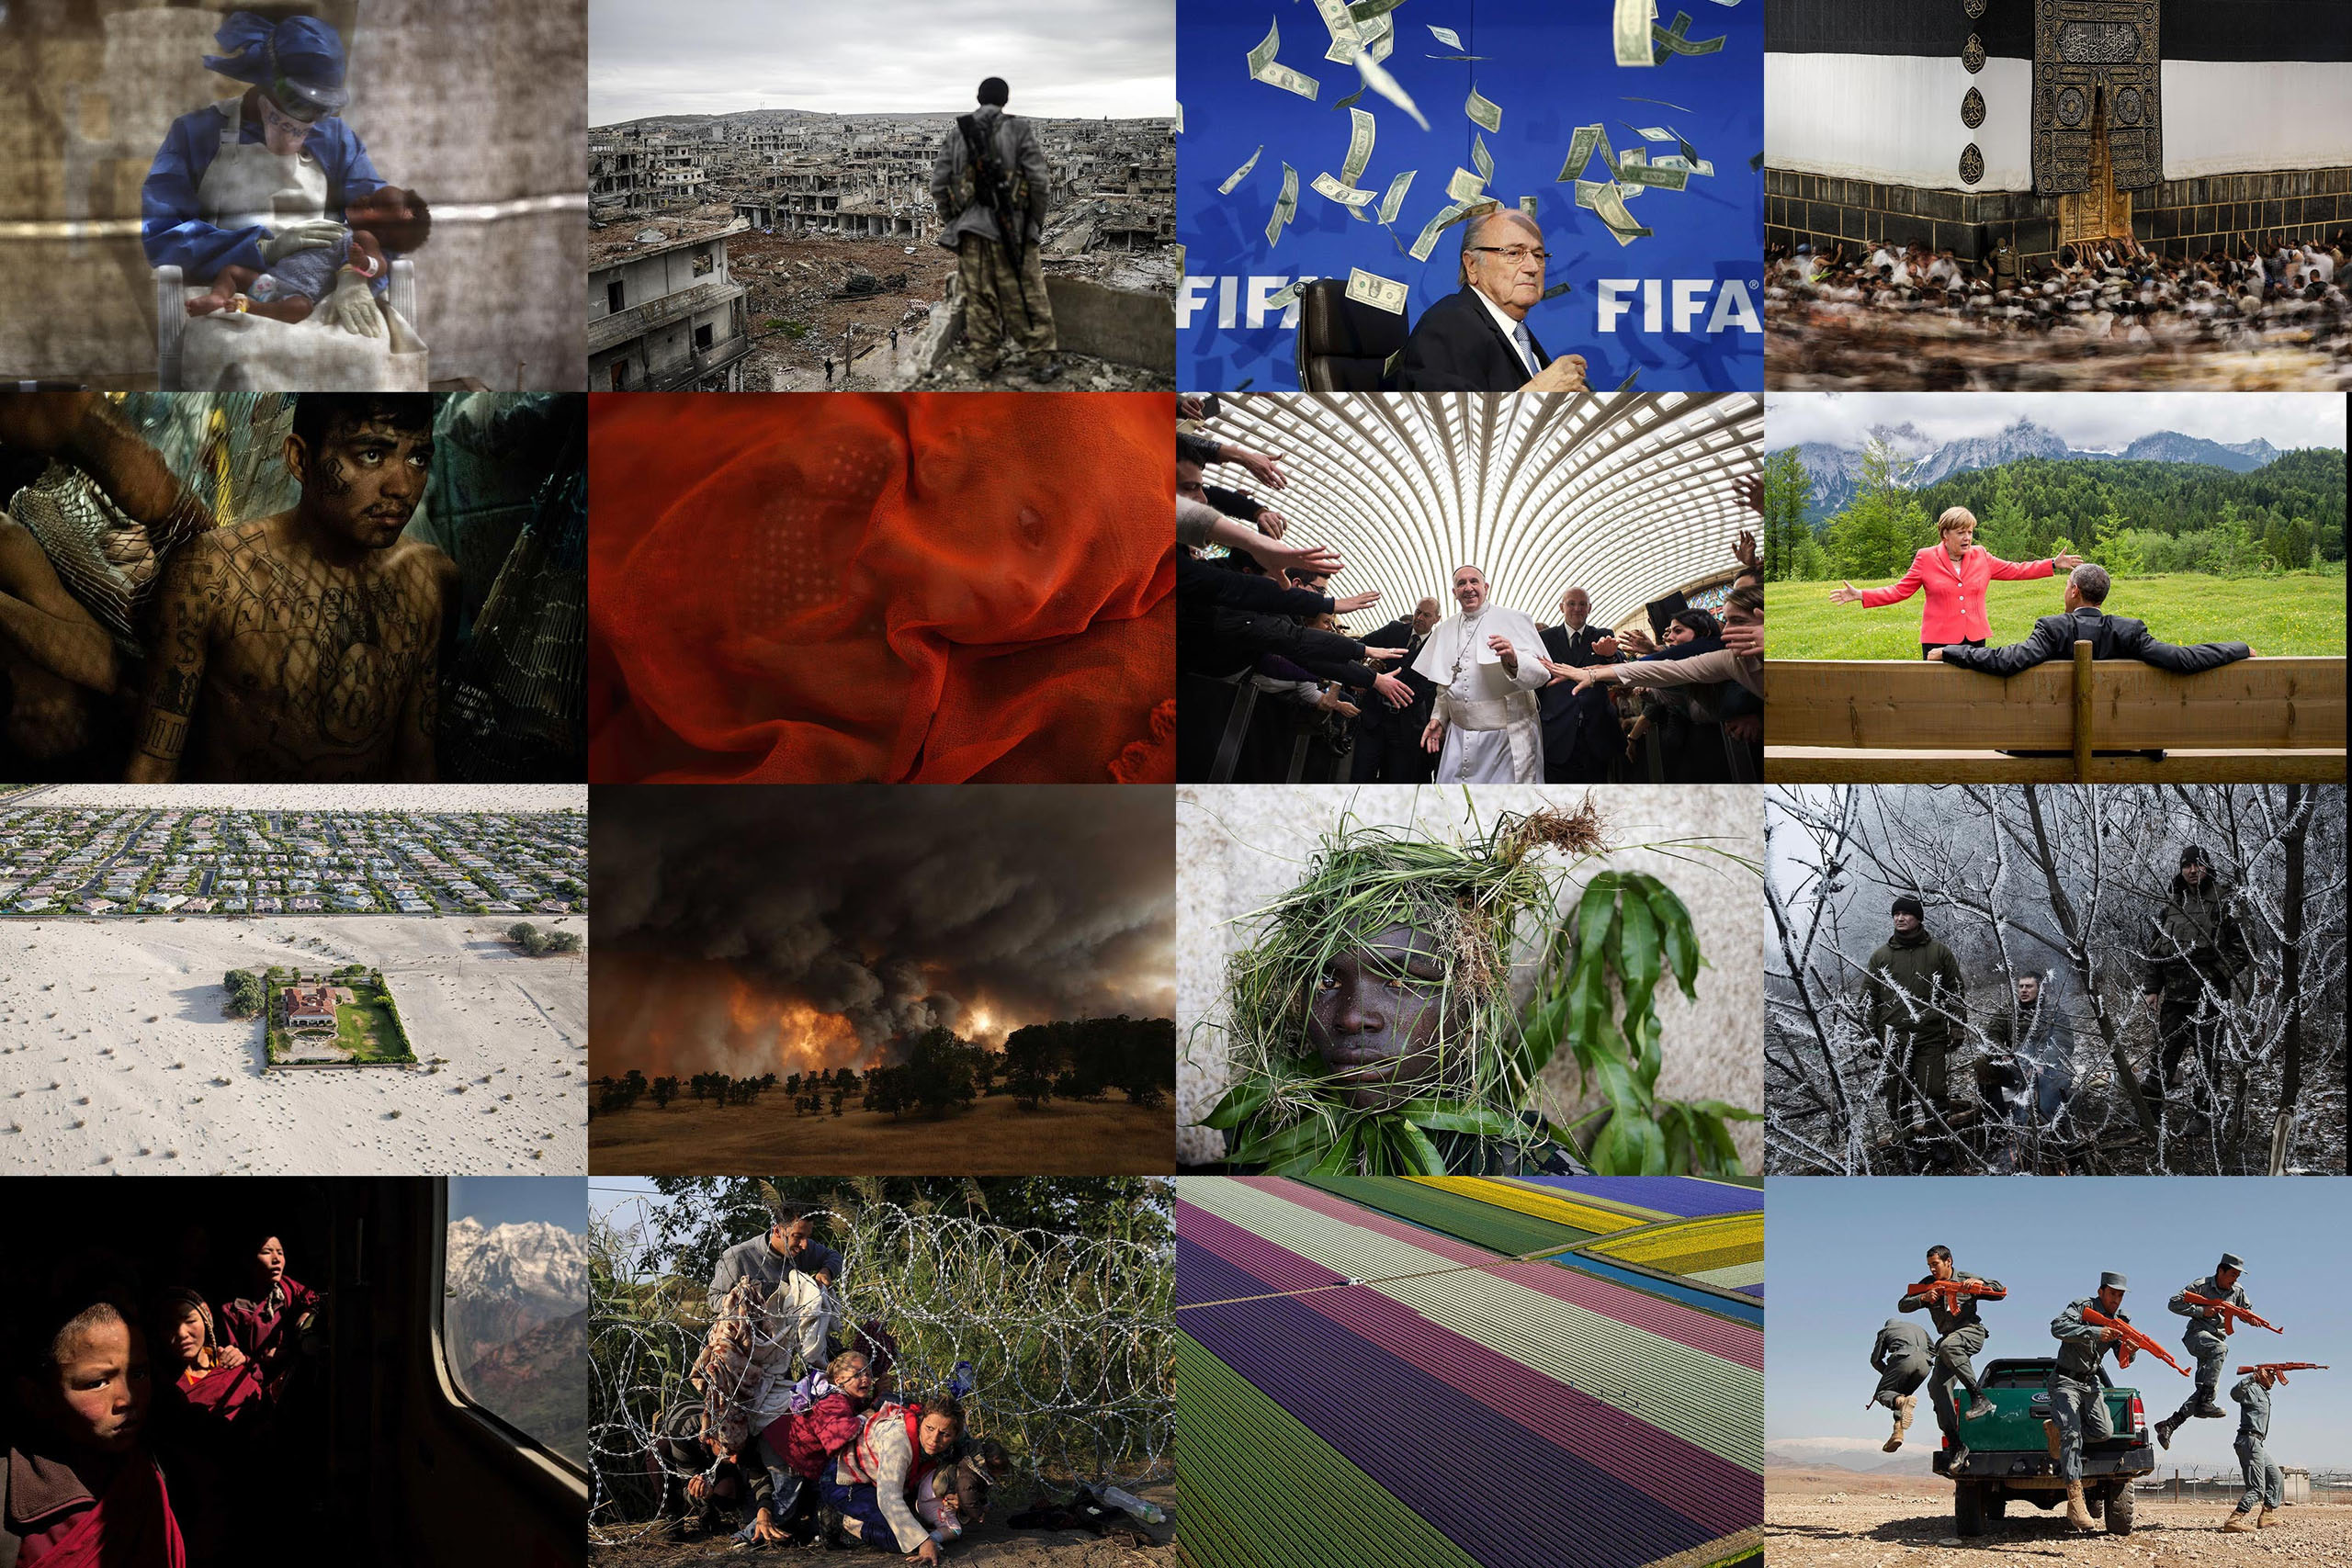 TIME Picks the Top 100 Photos of 2015